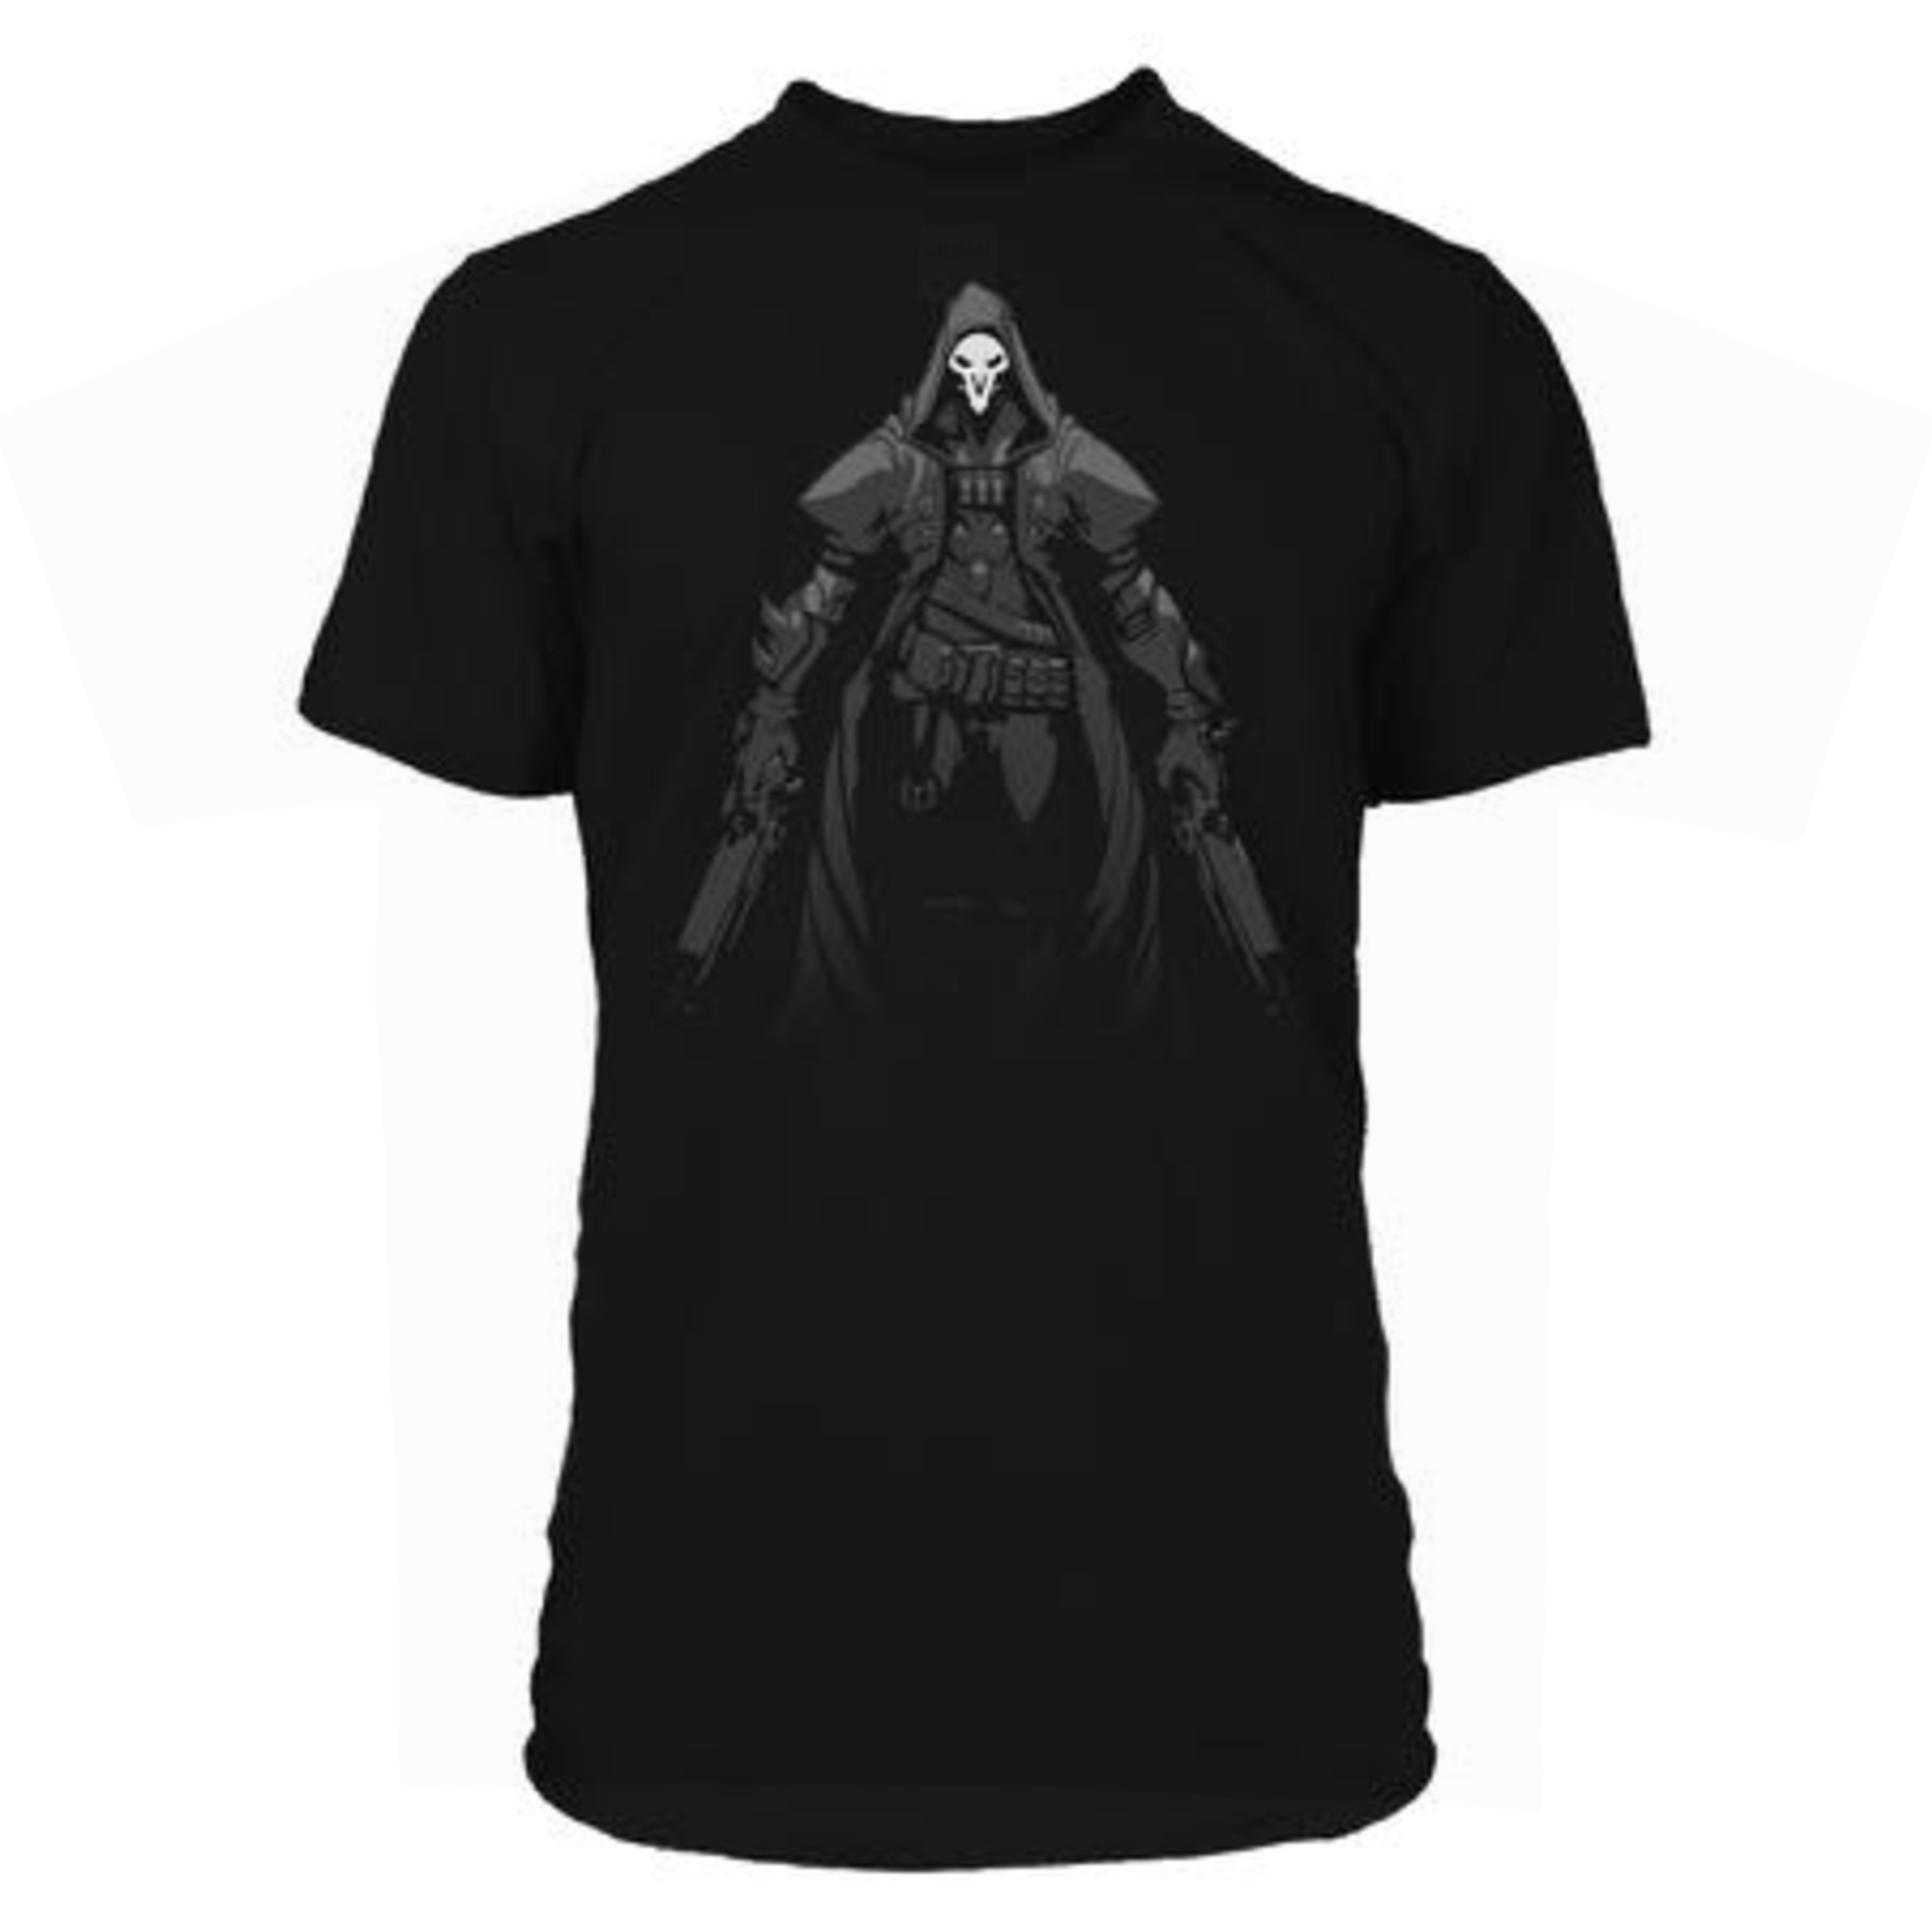 Alternative photo: Overwatch Death Walks Among You T-Shirt